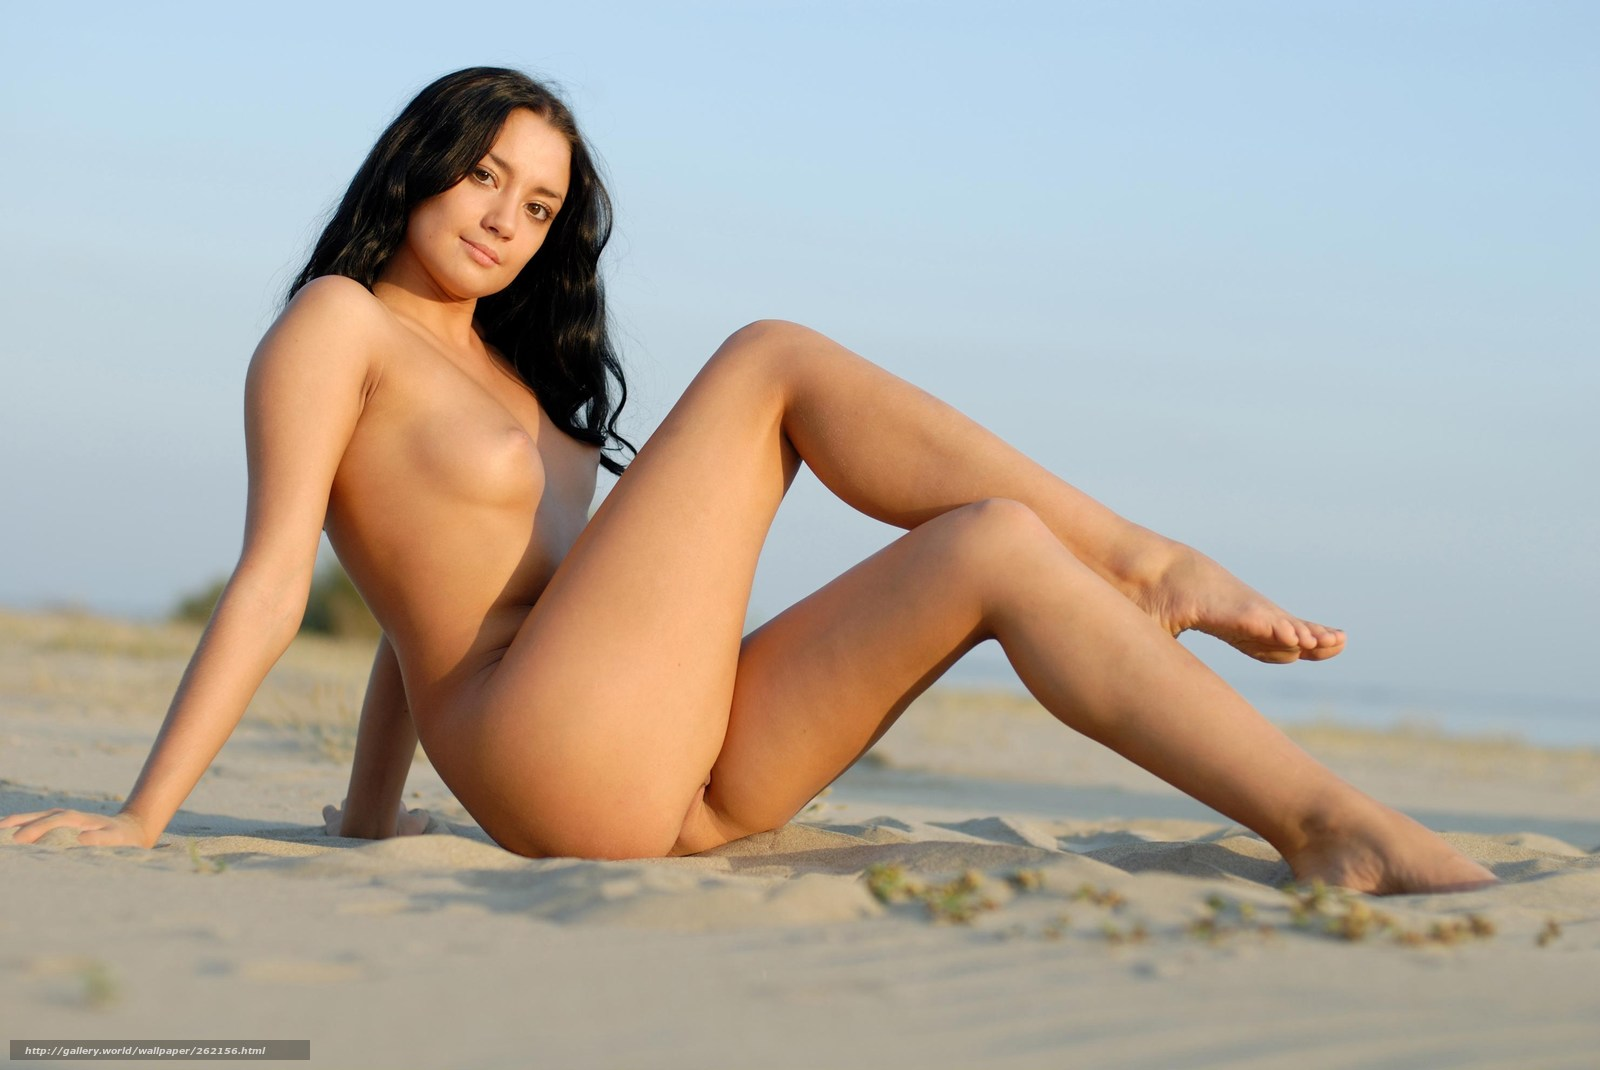 Wallpaper of naked women for androids naked photo